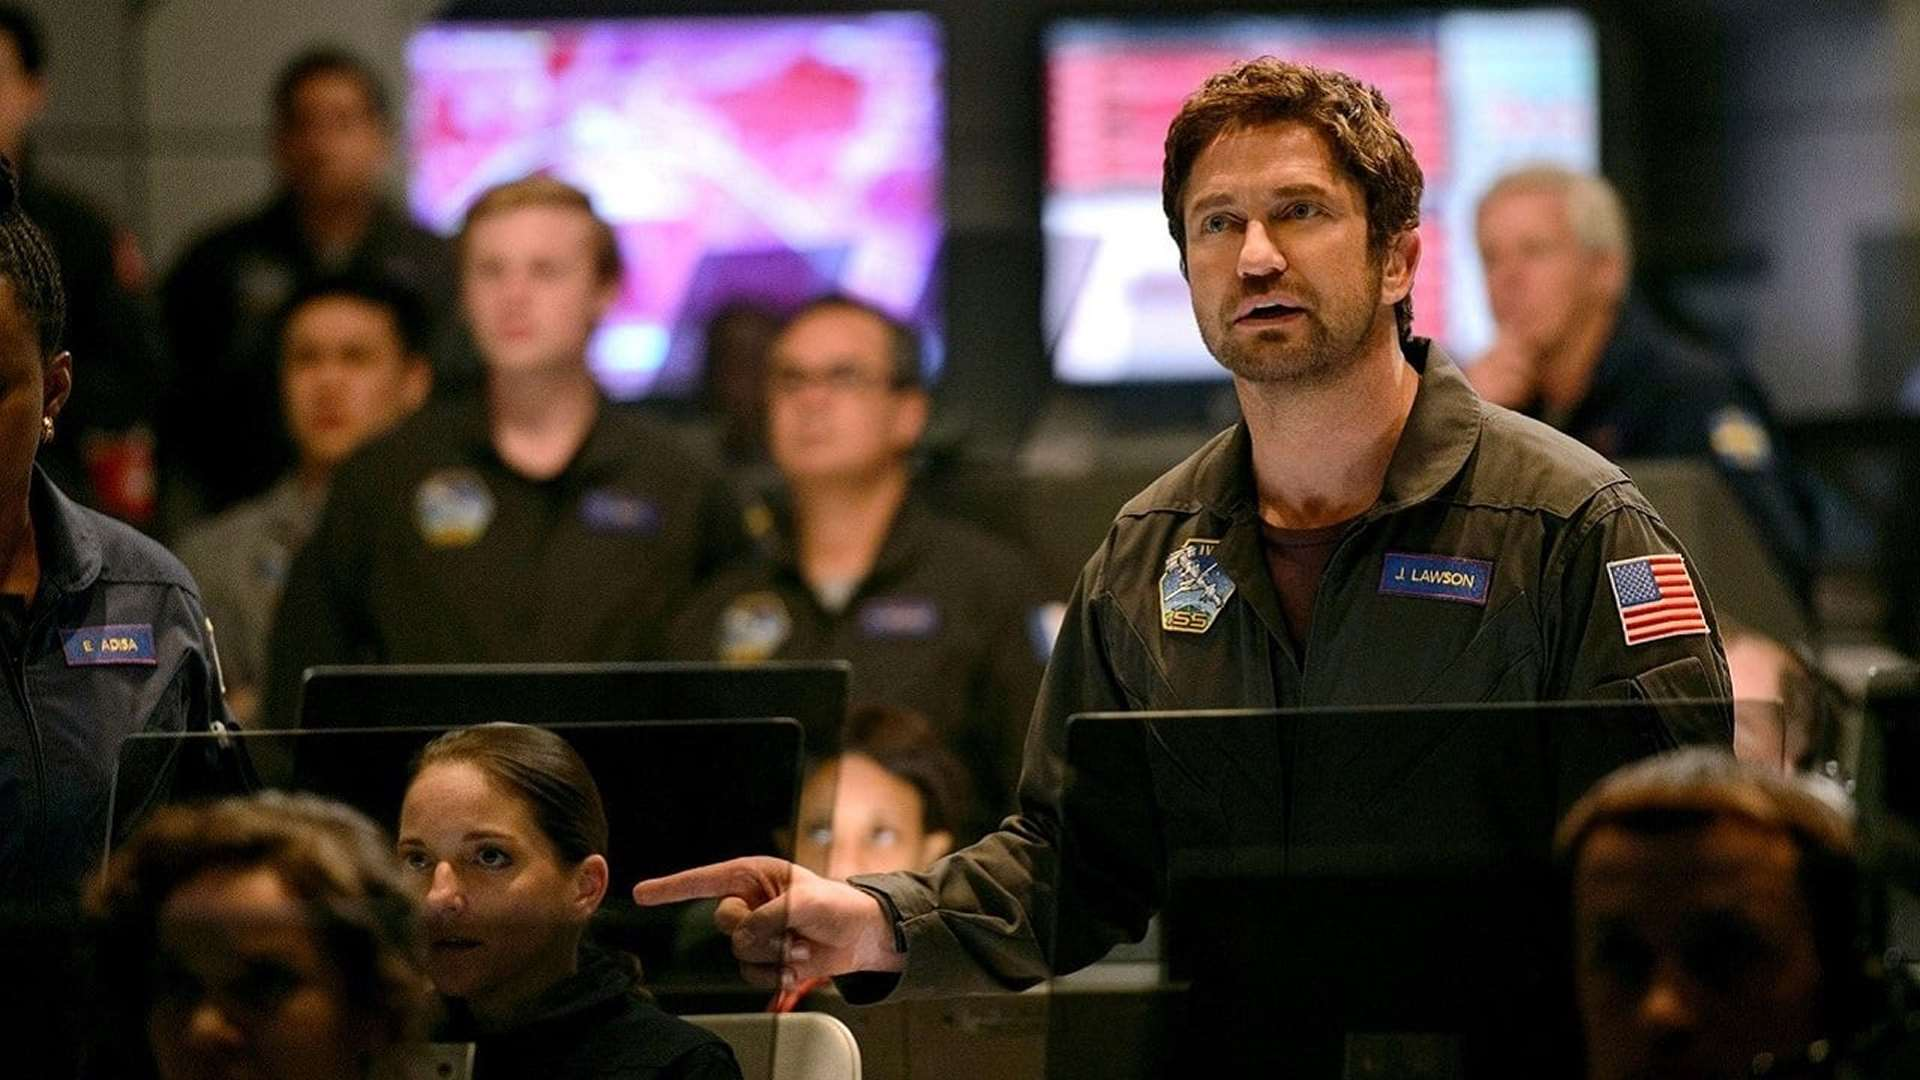 Gerard Butler, NASA engineer in Geostorm (2017)